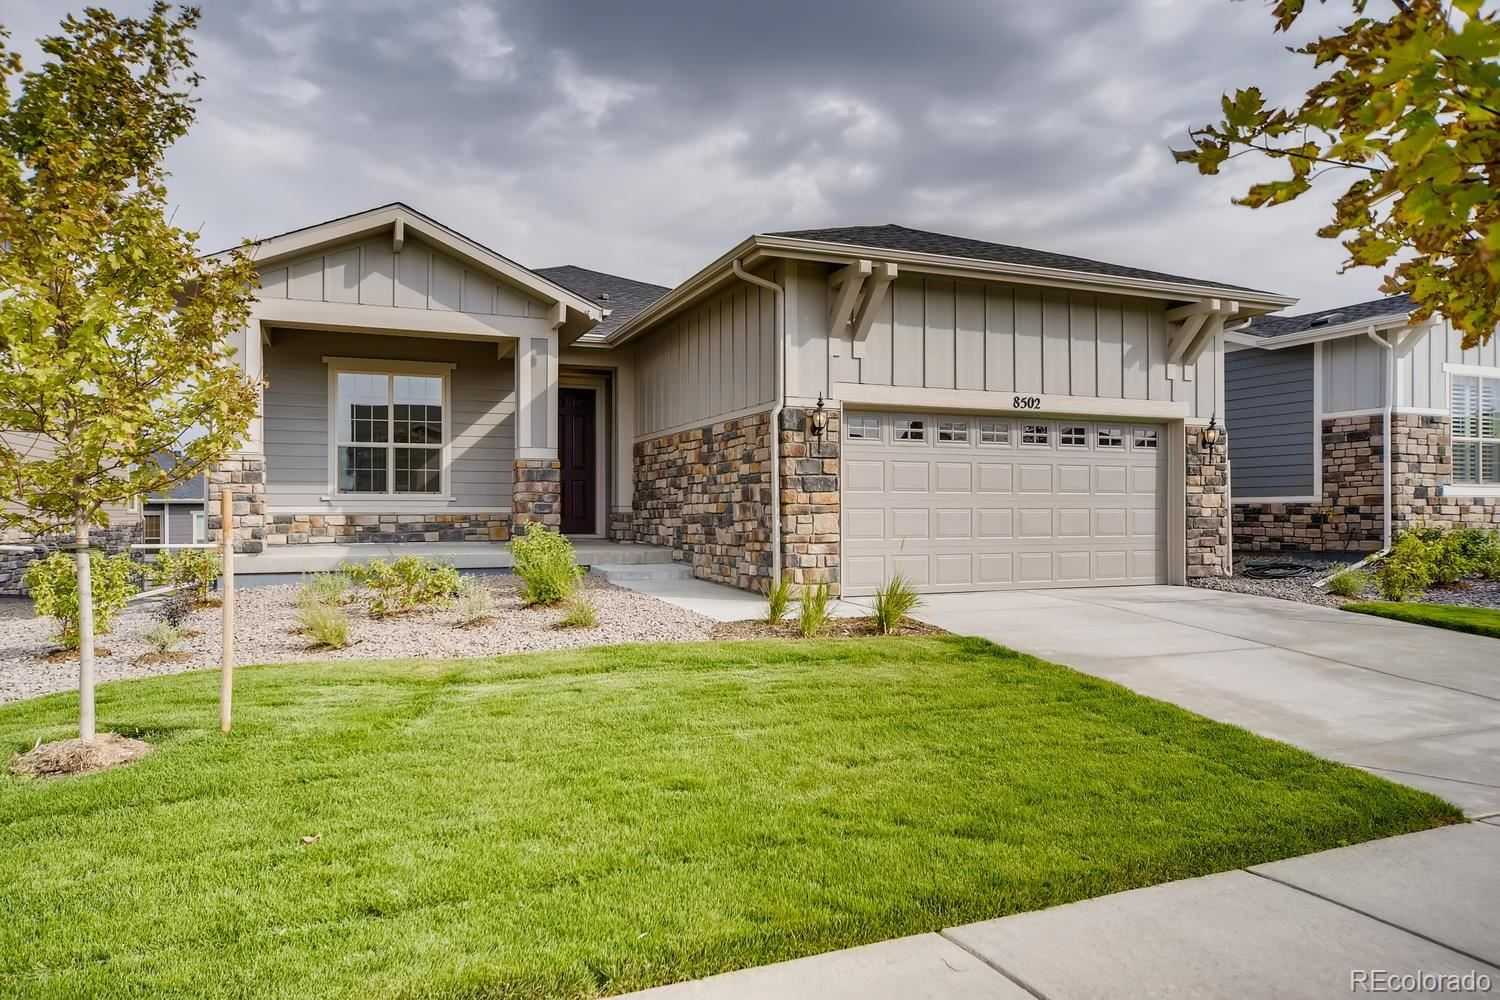 8502 S Rome Way, Aurora, CO 80016 - #: 3718005